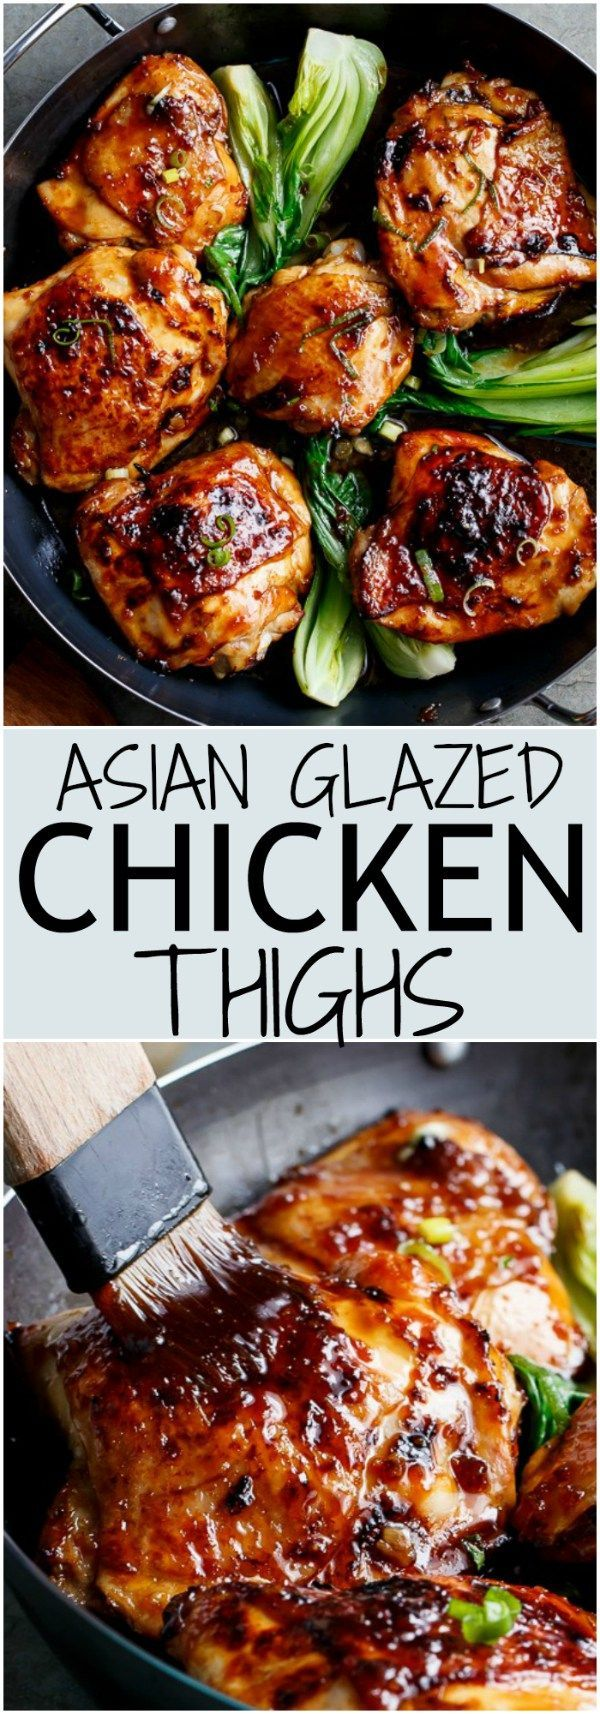 Roasted Asian Glazed Chicken Thighs | cafedelites.com